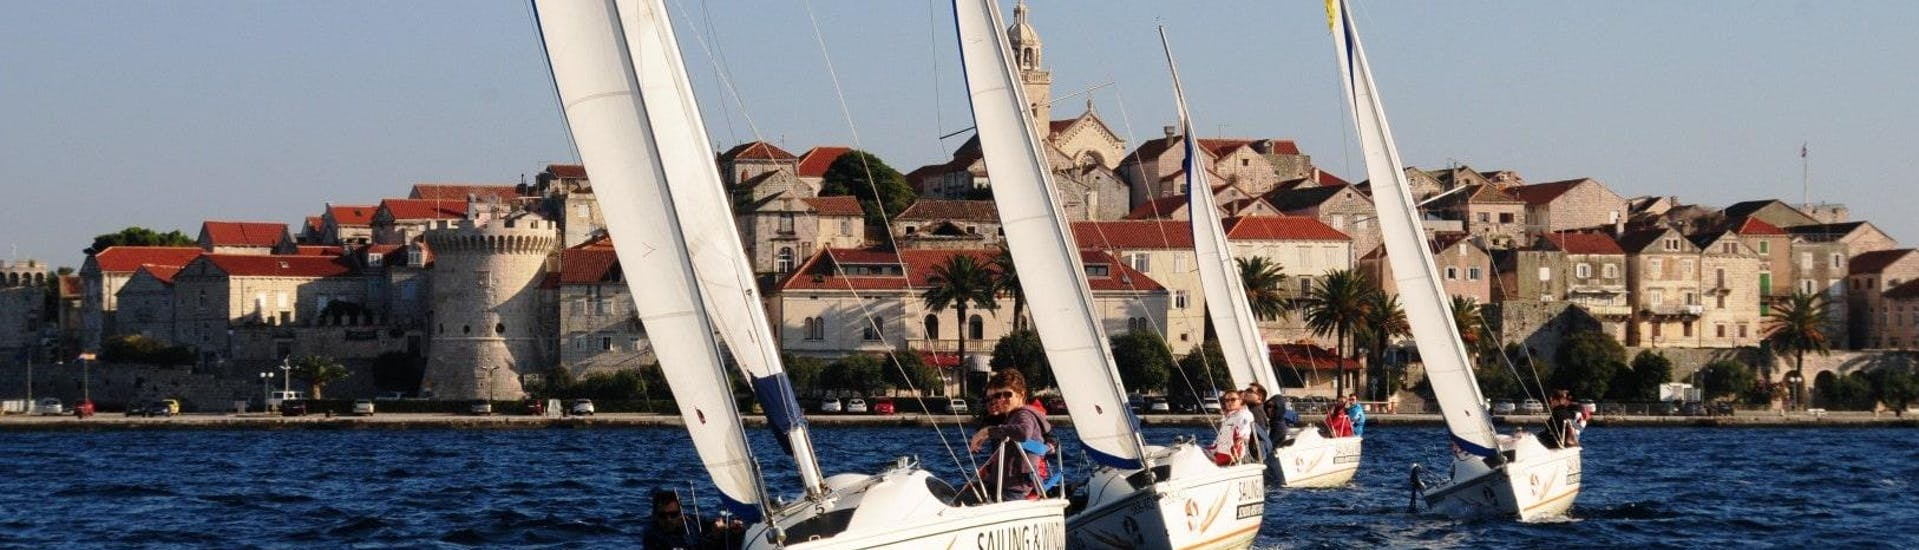 Full-day Sailing Keelboat Trip from Korčula with Swimming